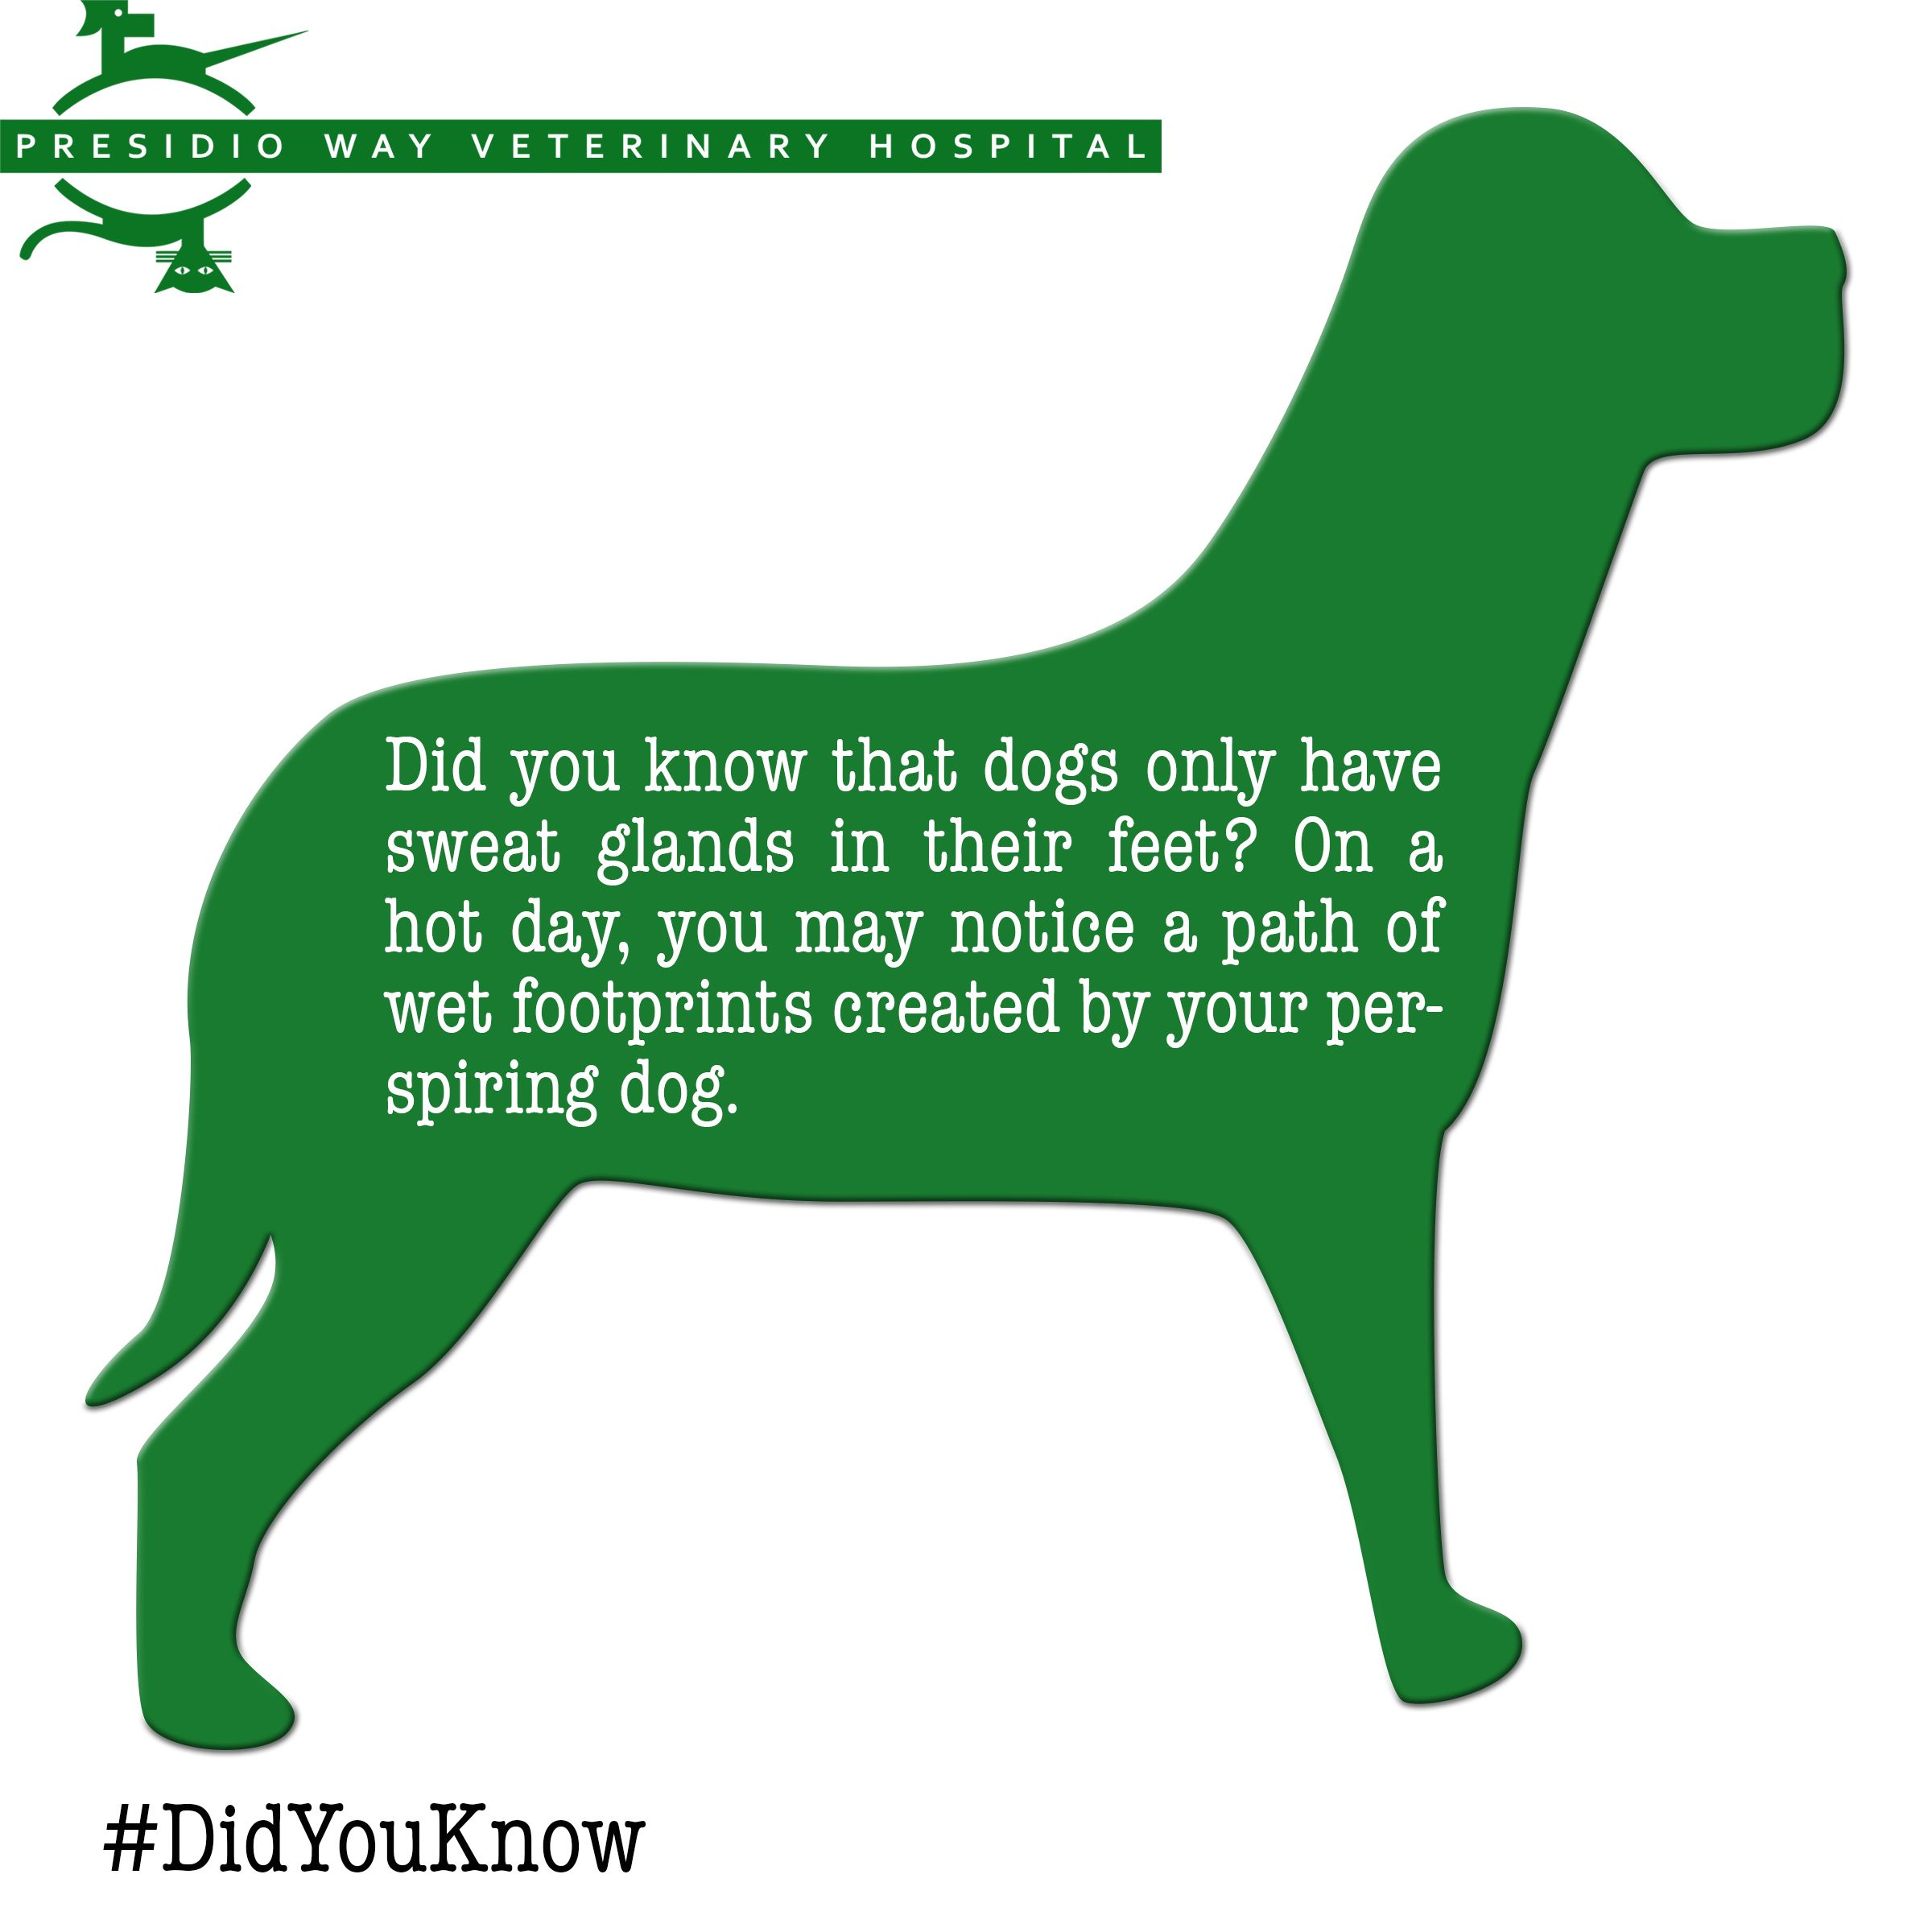 Did You Know That Dogs Only Have Sweat Glands In Their Feet On A Hot Day You May Notice A Path Of Wet Footprints Crea Veterinary Hospital Veterinary Dog Care